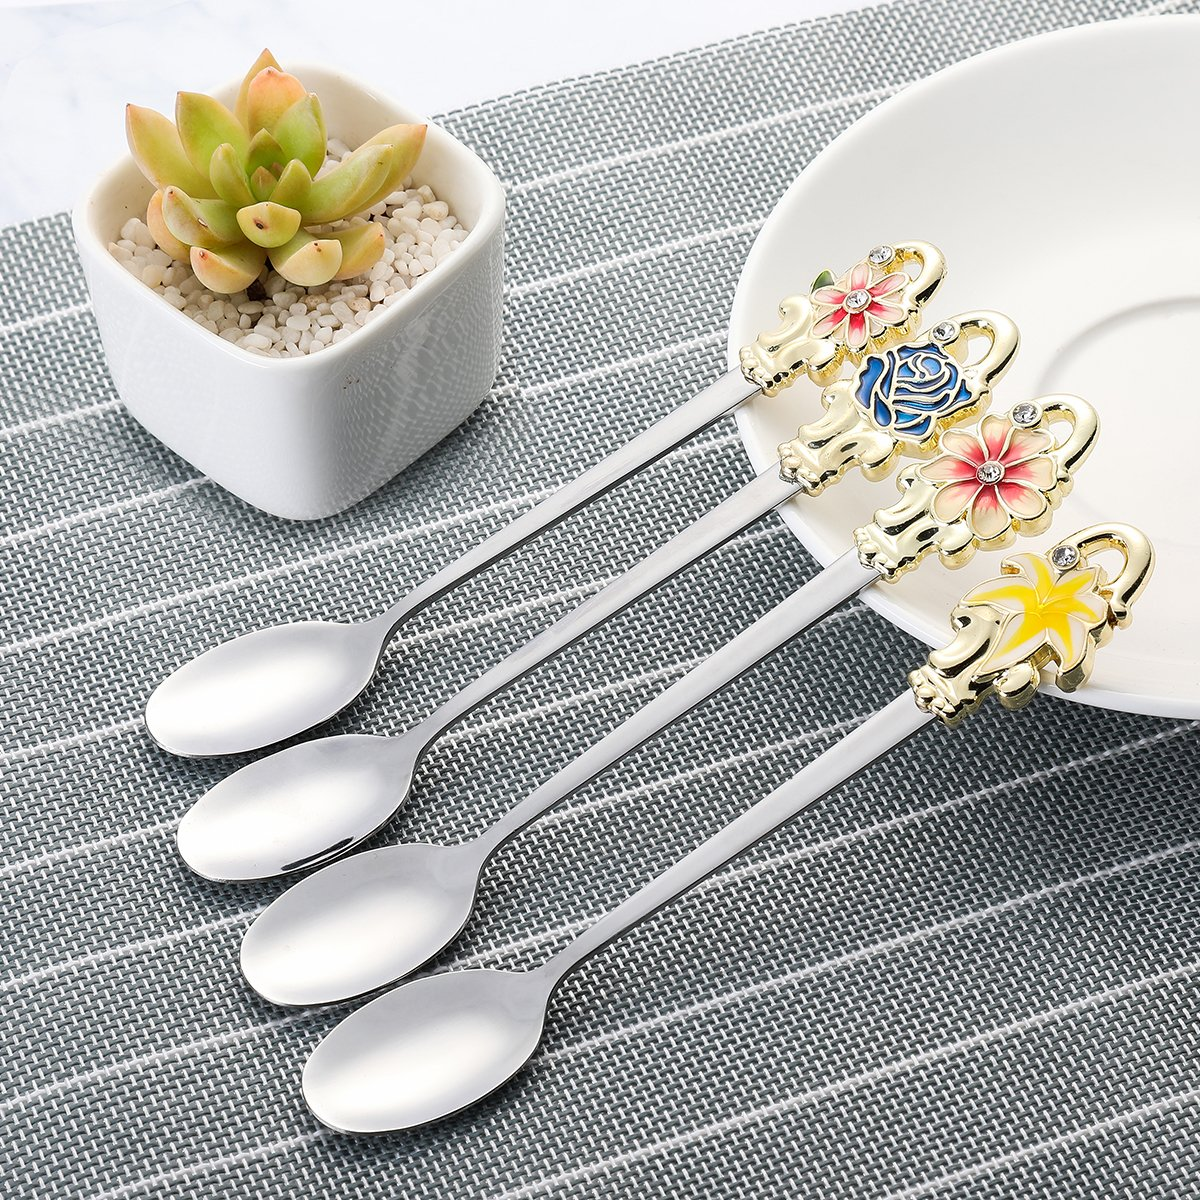 Long Handle Iced Tea Spoon, Coffee Spoon, Ice Cream Spoon, Stainless Steel Cocktail Stirring Spoons, Set of 4- Perfect Gift for Mother's Day